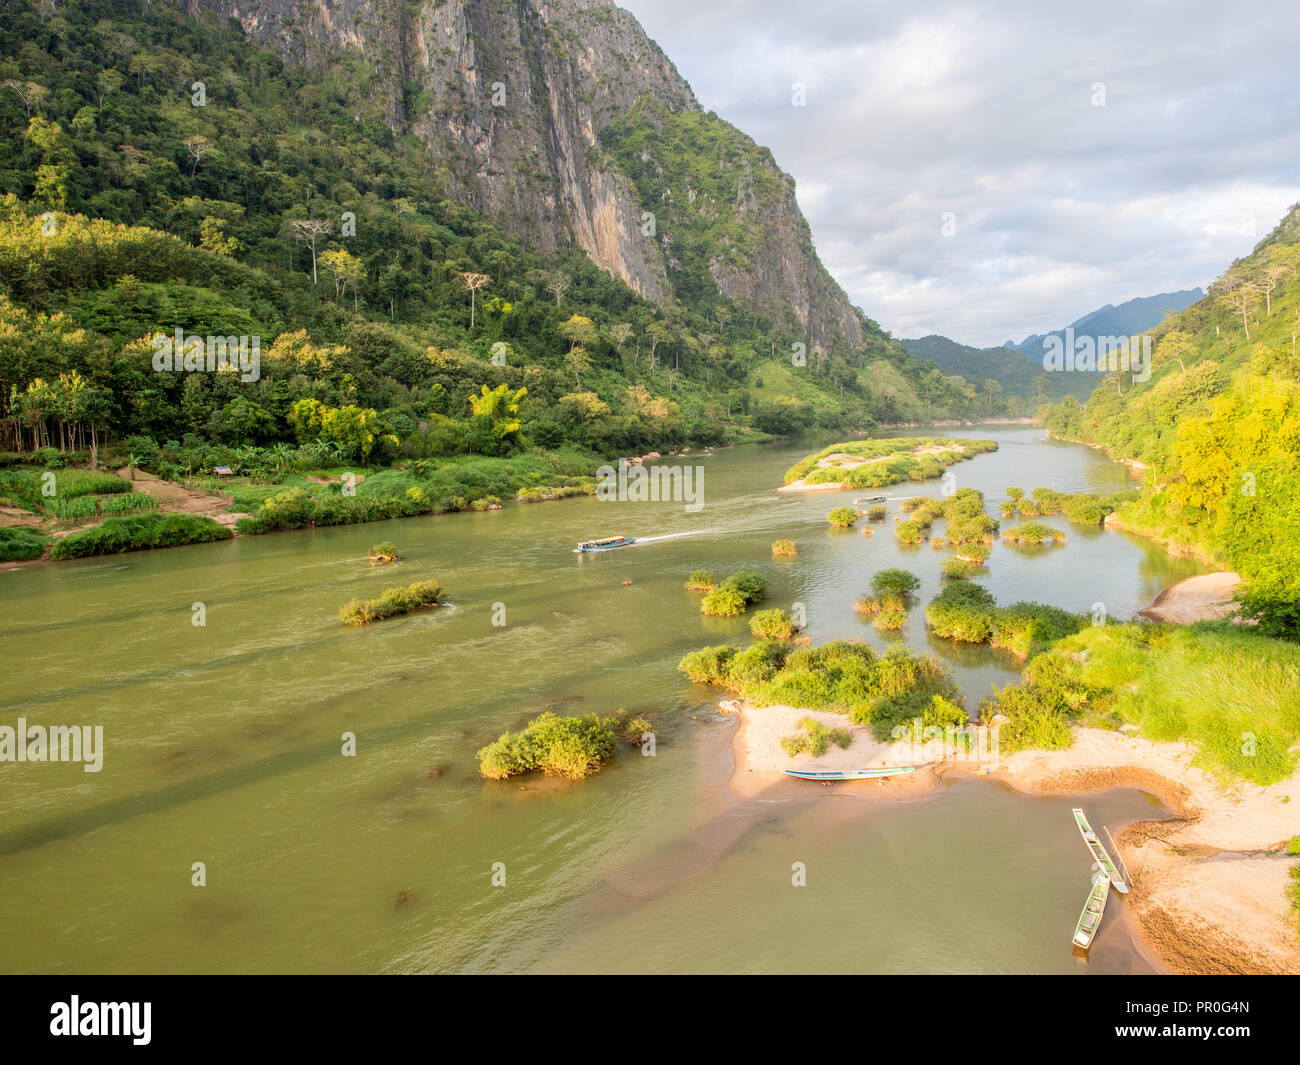 View of mountains and the Nam Ou River, Nong Khiaw, Laos, Indochina, Southeast Asia, Asia - Stock Image